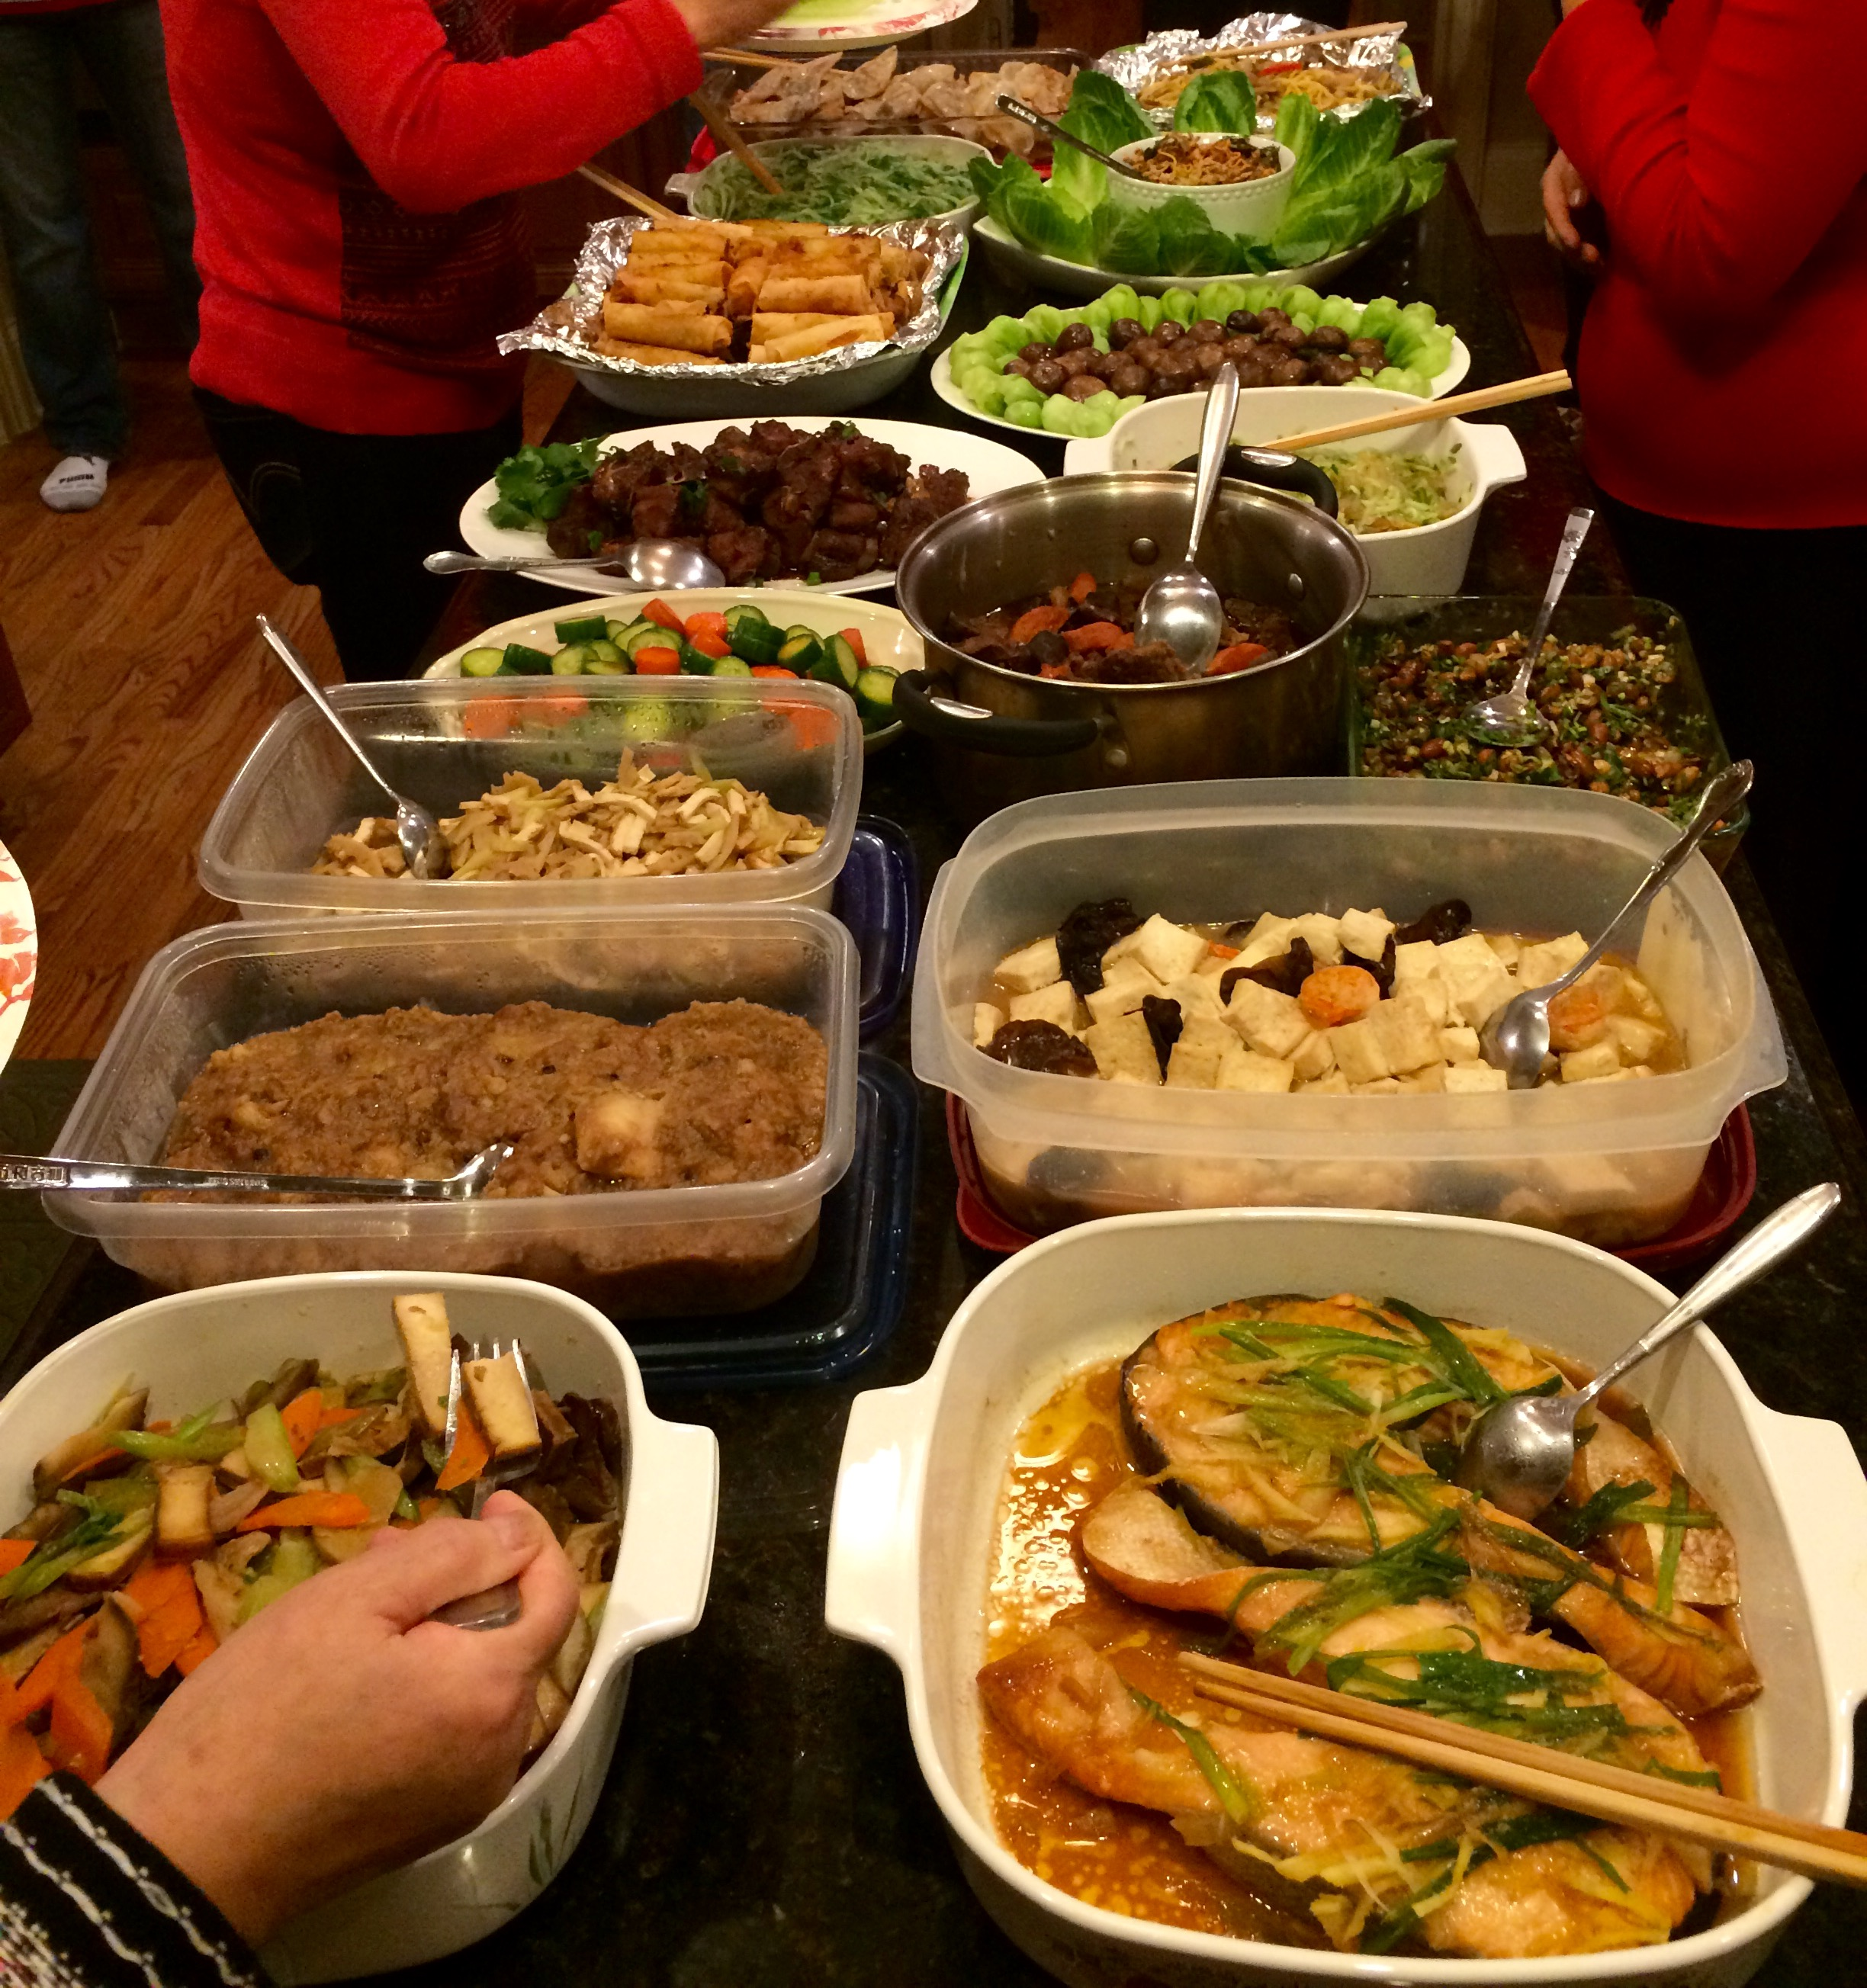 Churches to Officially Rank Potluck Dishes Each Sabbath